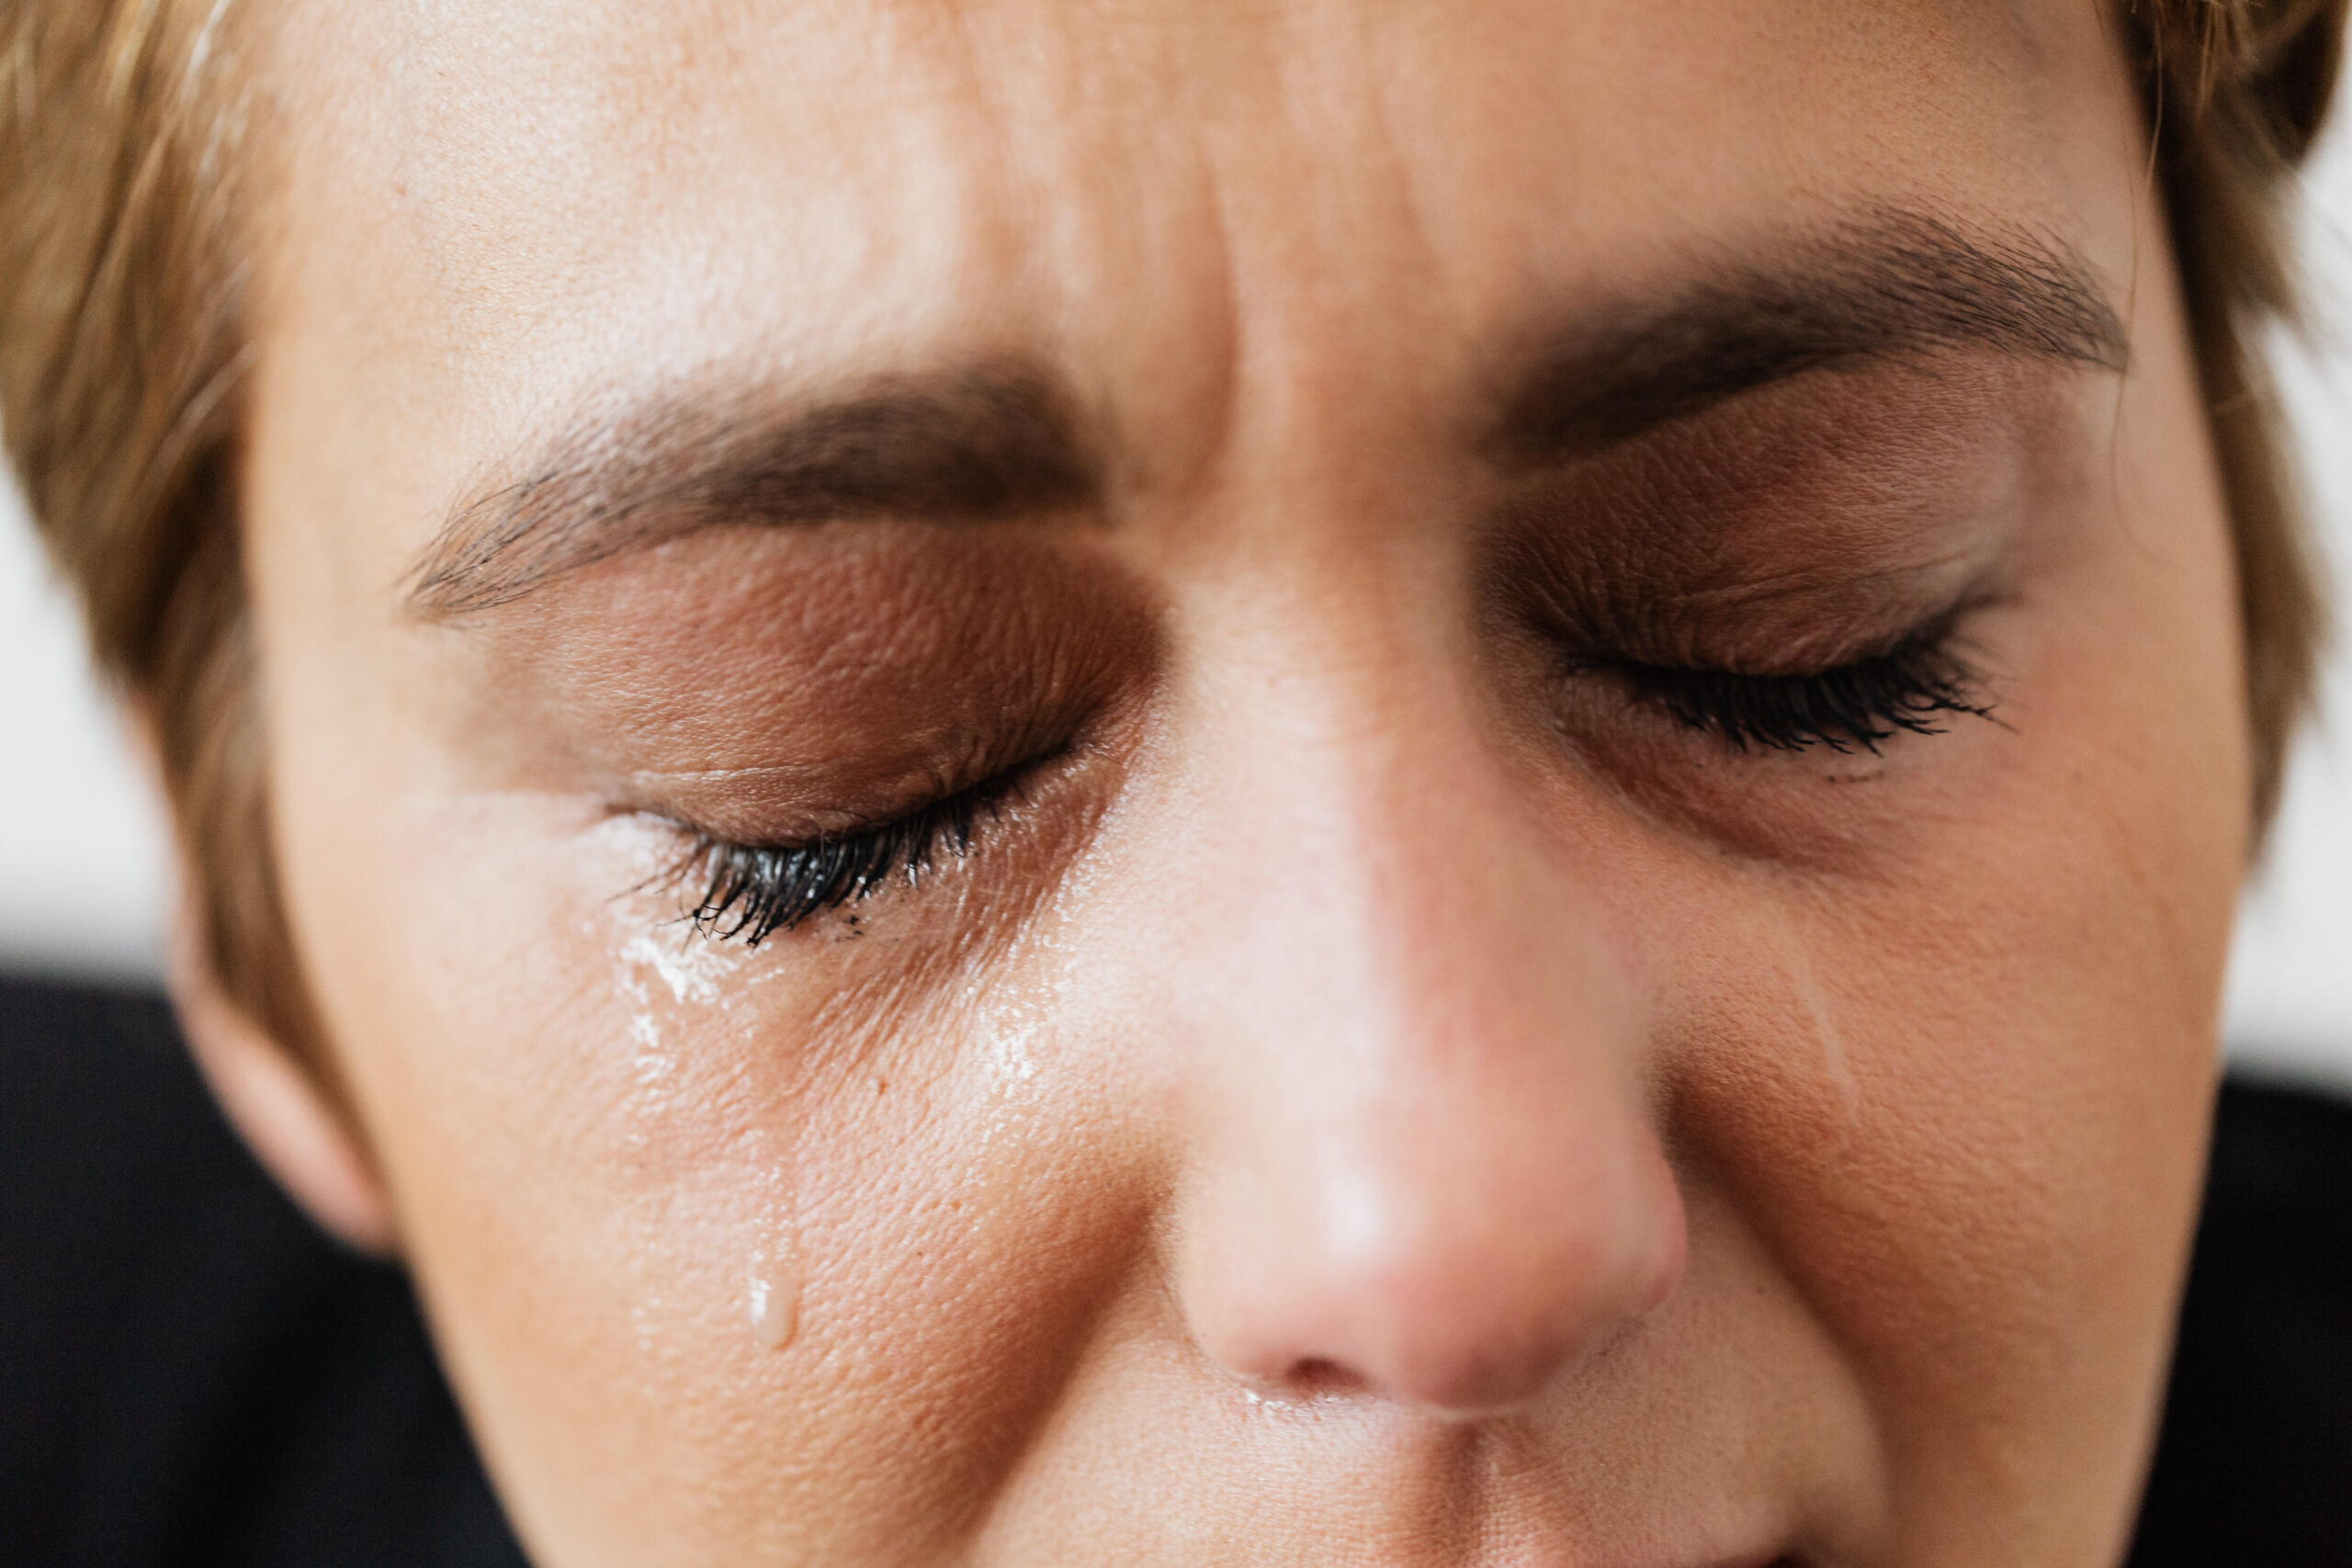 tears-on-face-of-crop-anonymous-woman-4471315